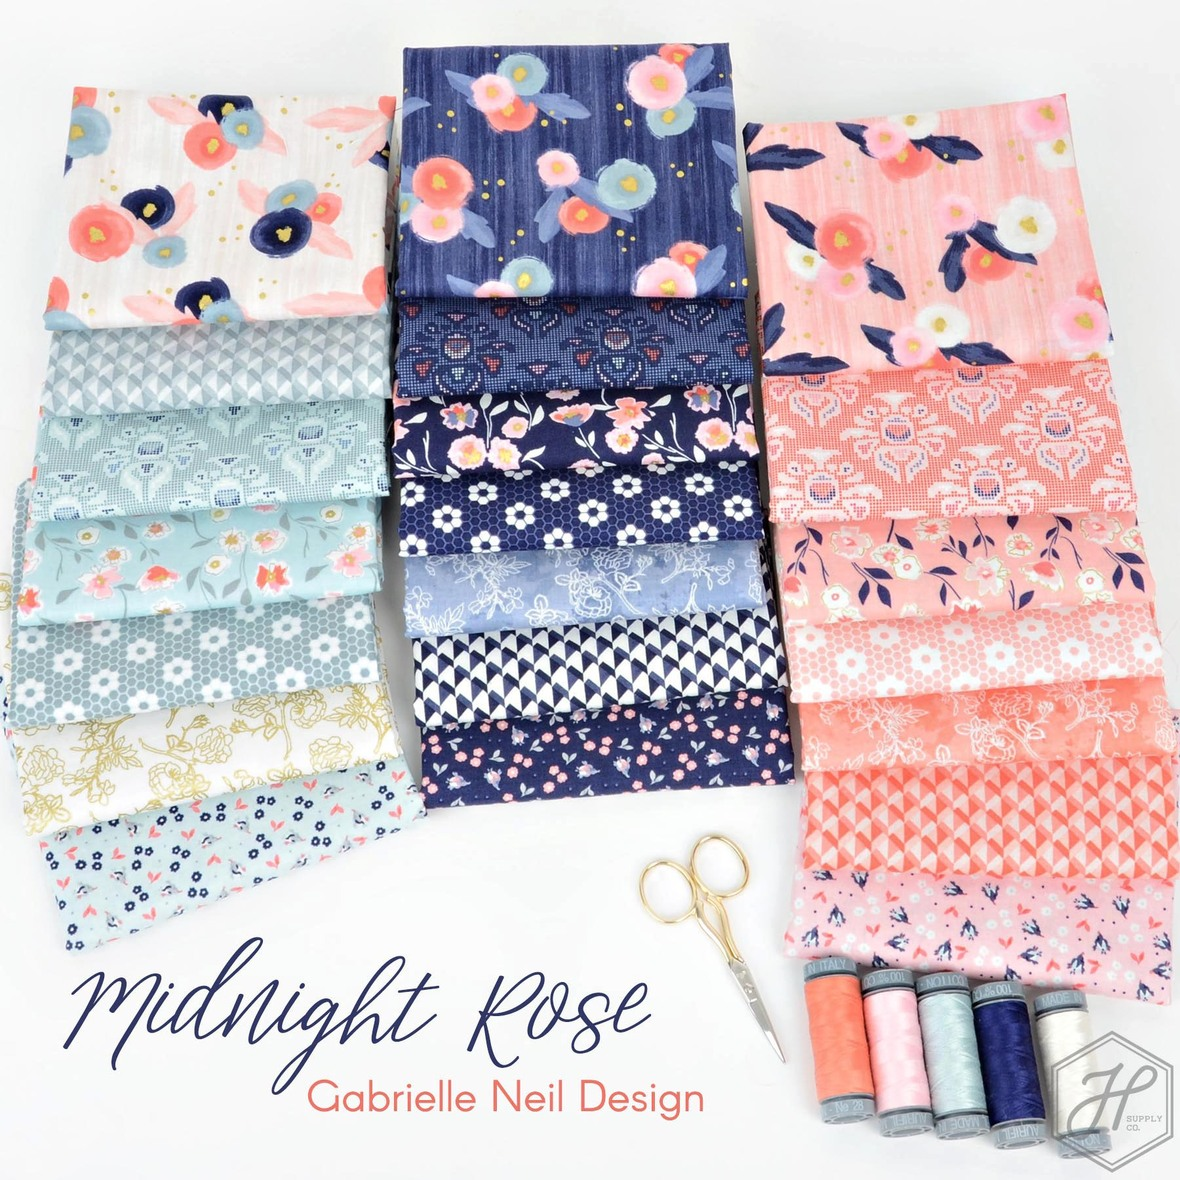 Midnight Rose Fabric Gabrielle Neil Design for Riley Blake at Hawthorne Supply Co